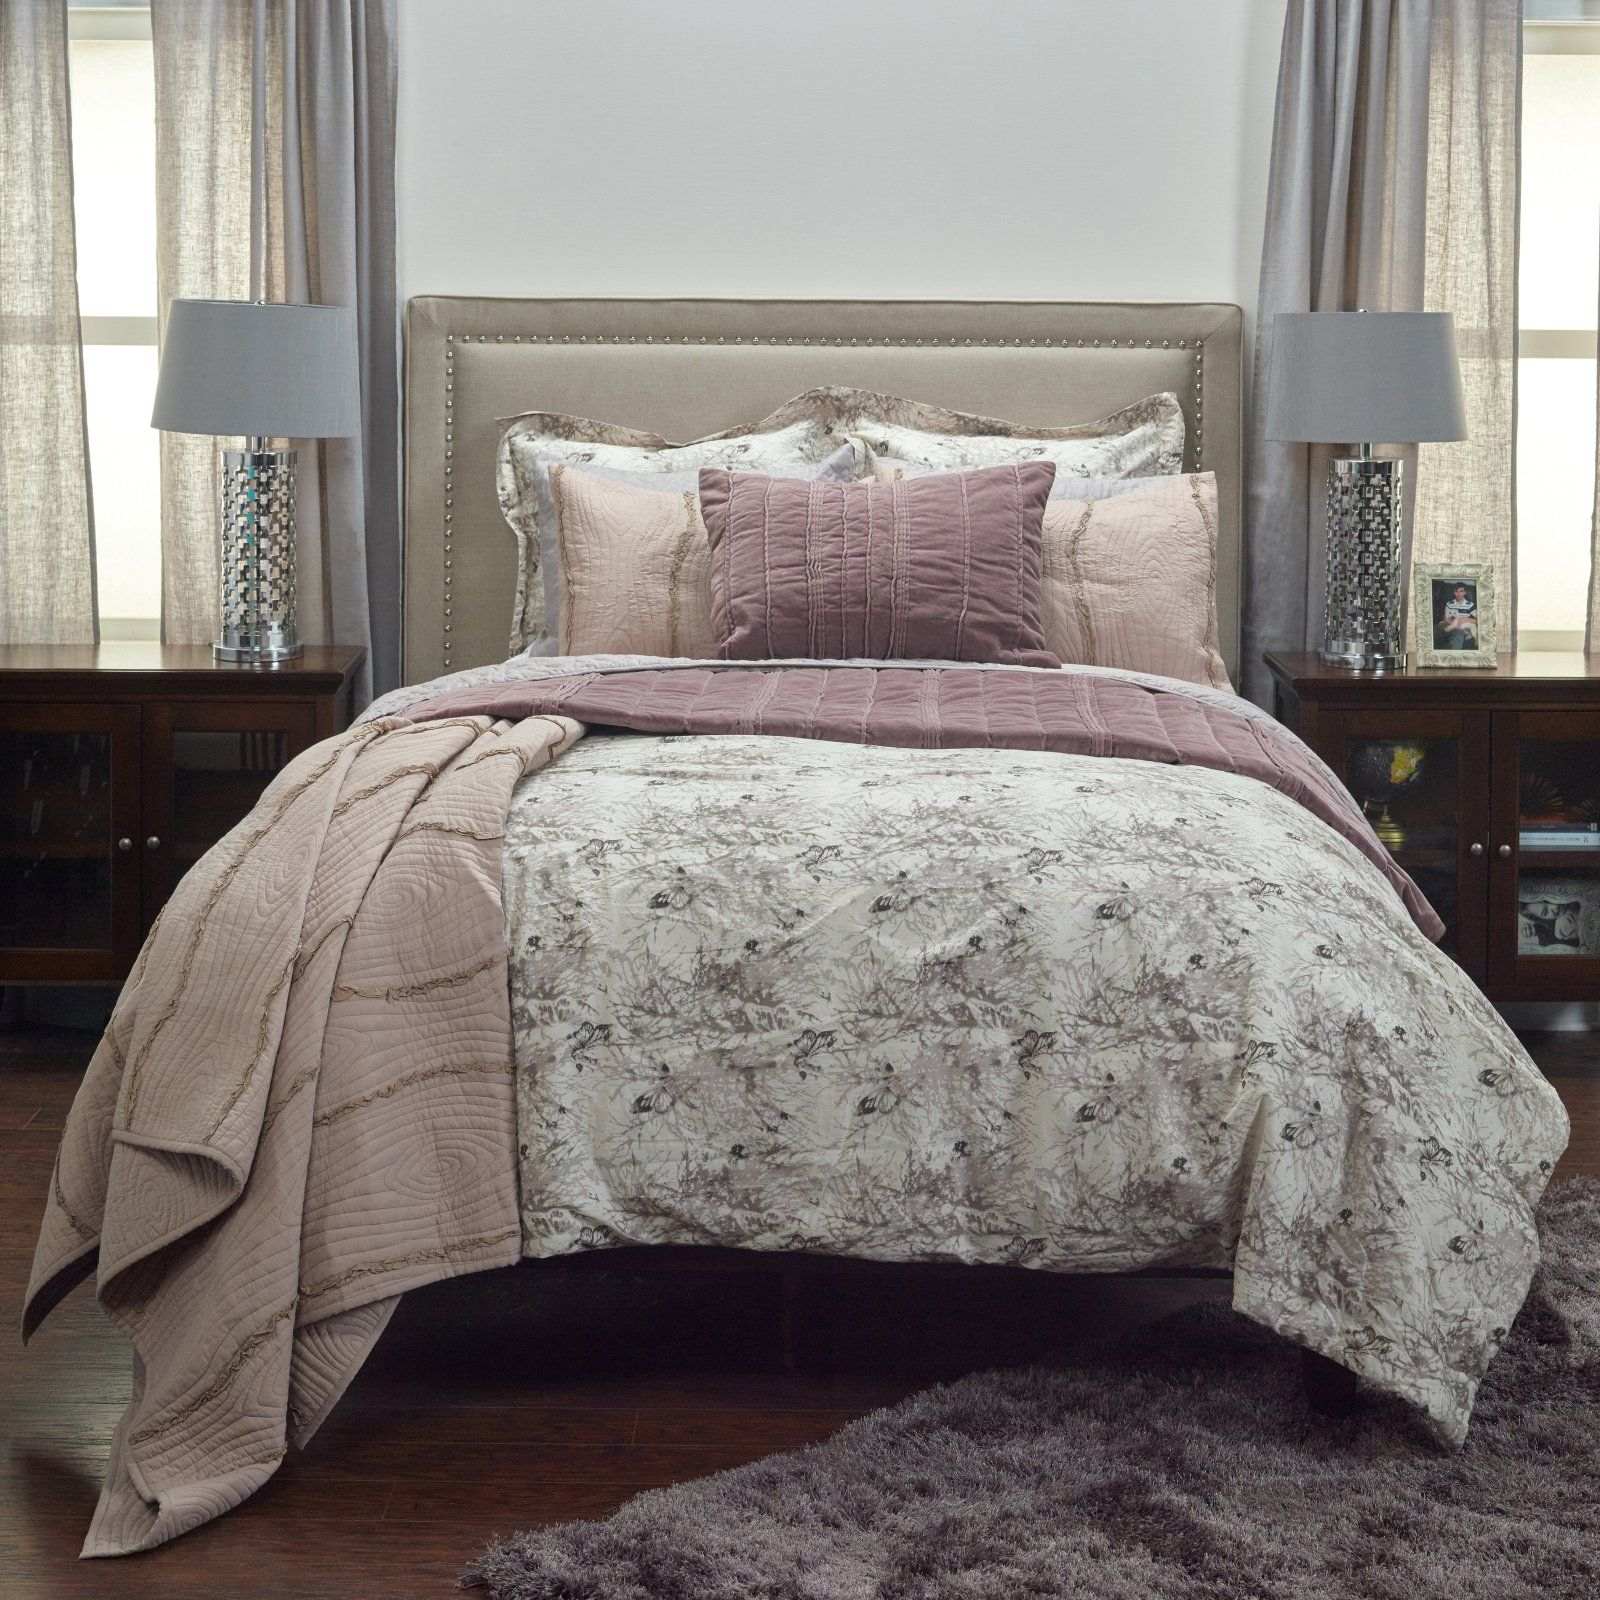 Vintage Butterfly 3 Piece Bedding Set By Rizzy Home Size Twin